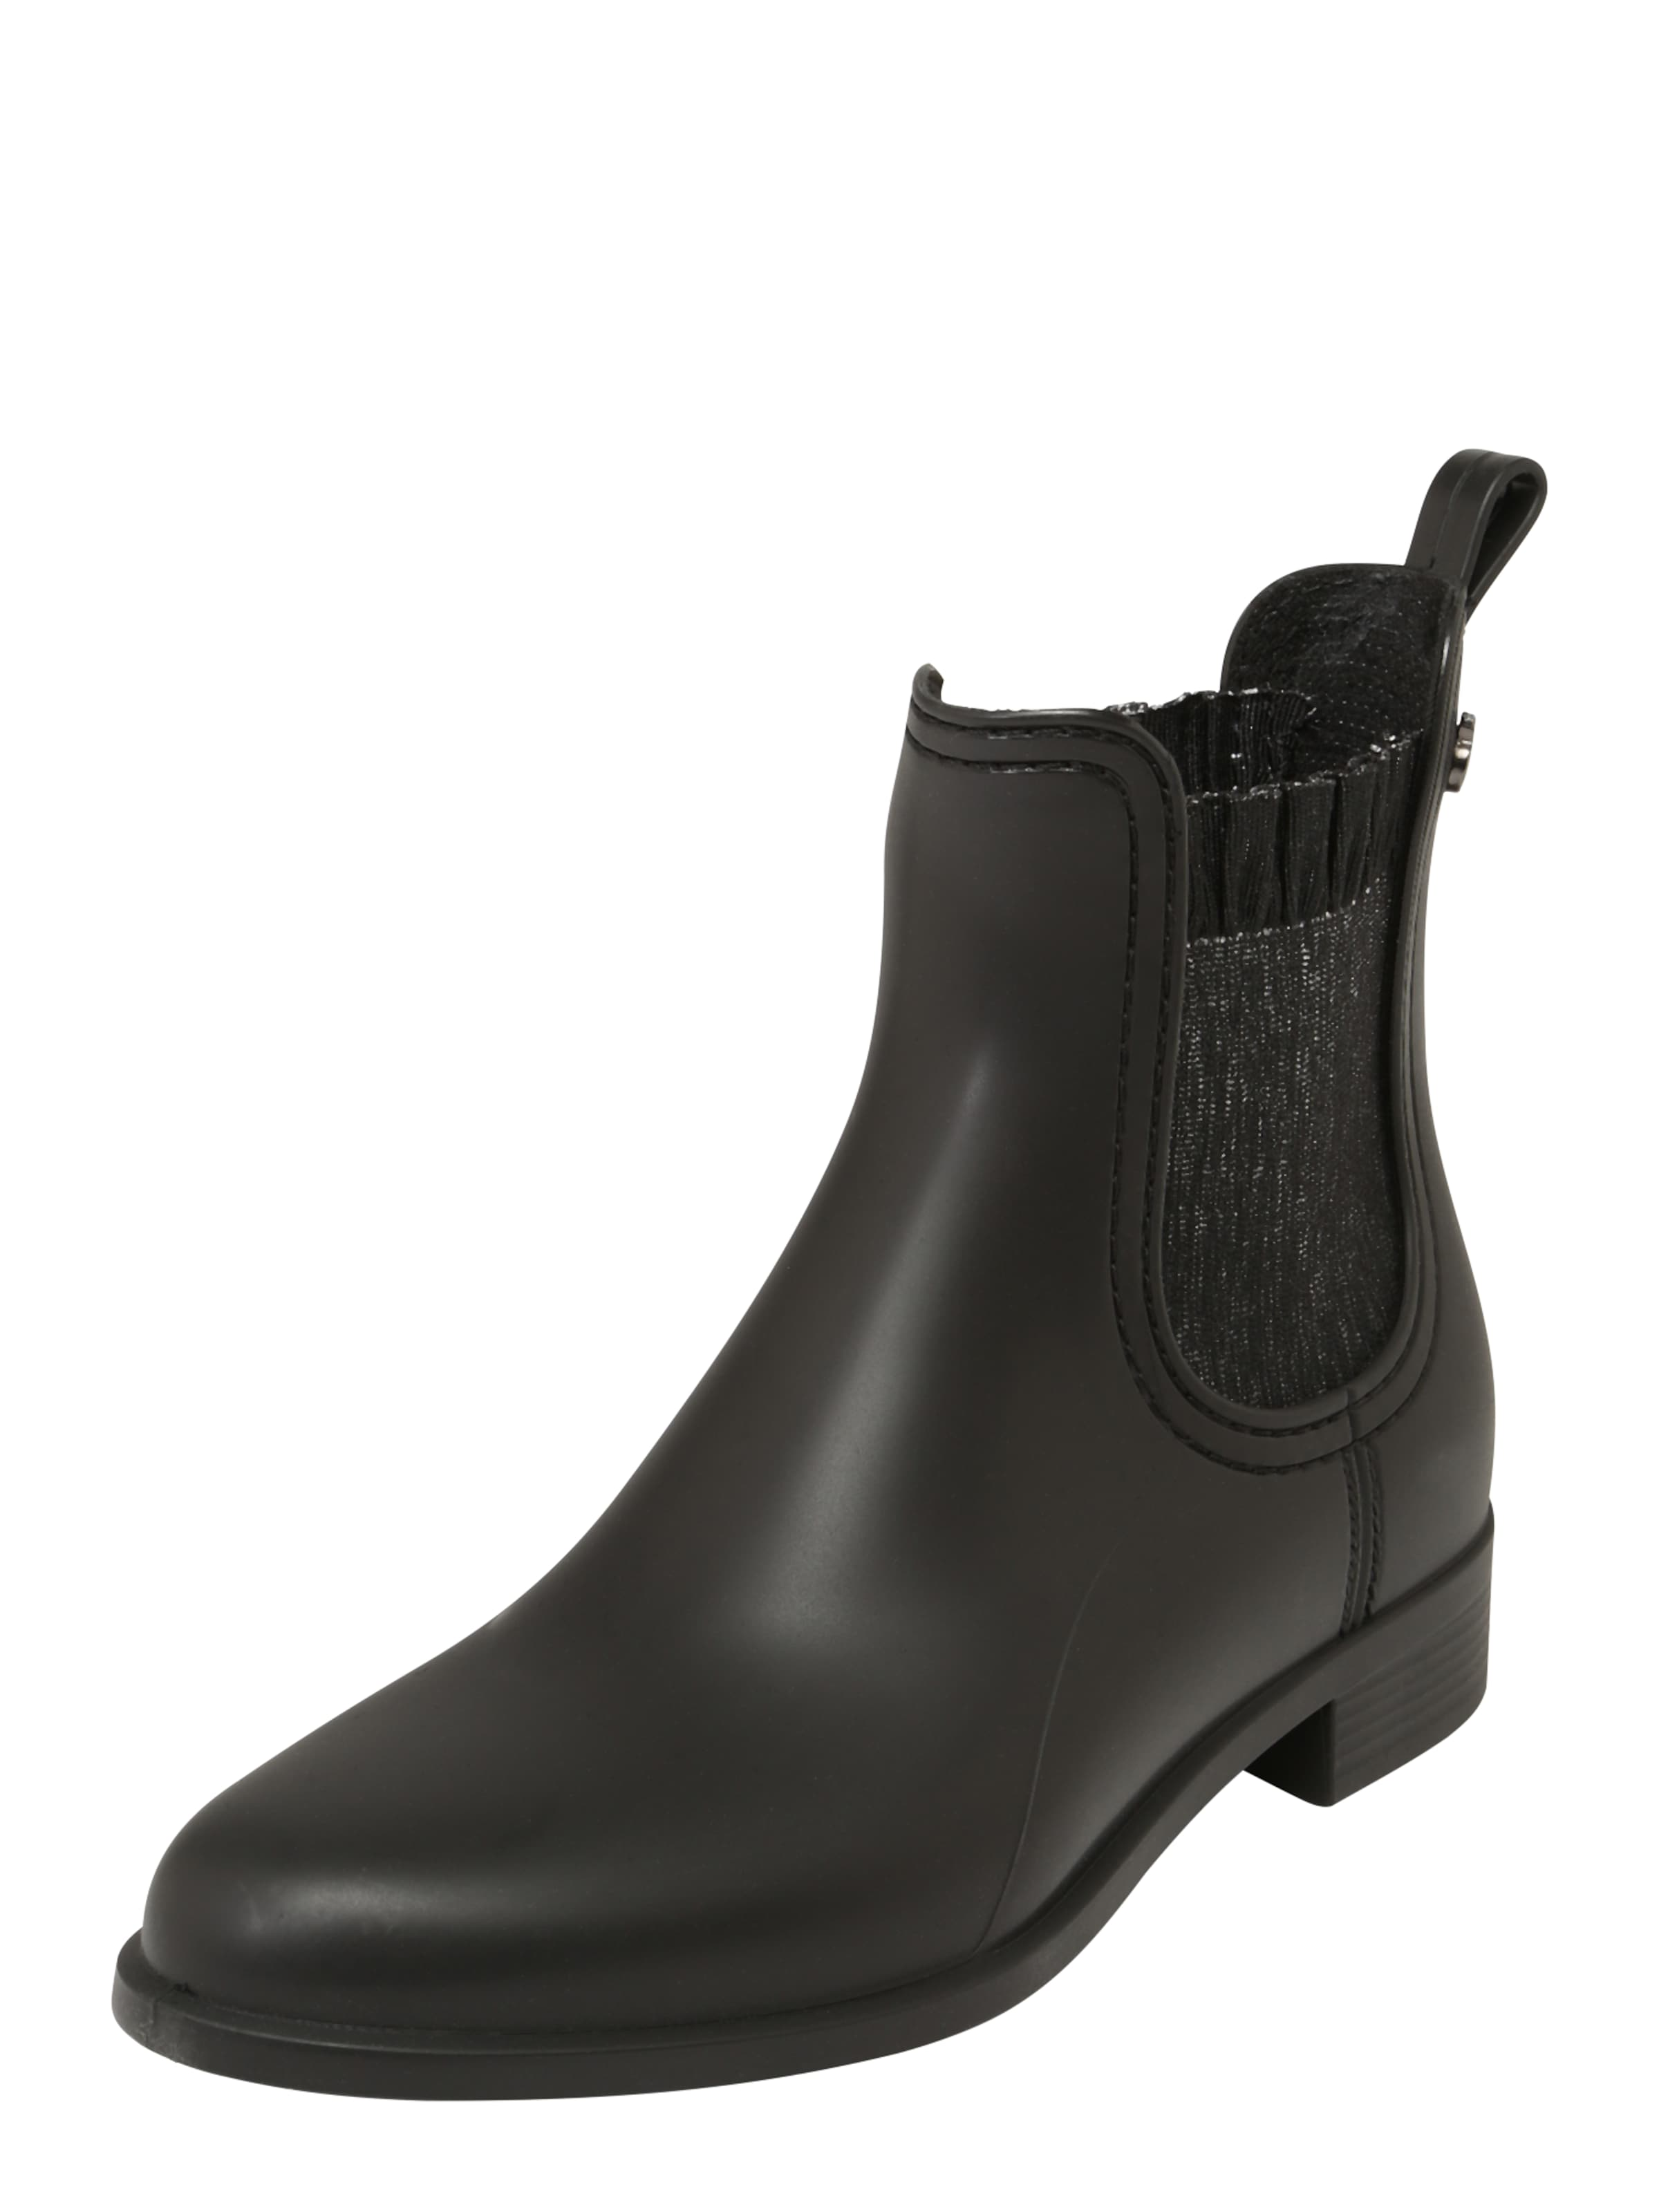 Lemon Schwarz Jelly Stiefel 'emery' In 1JTlc3FK